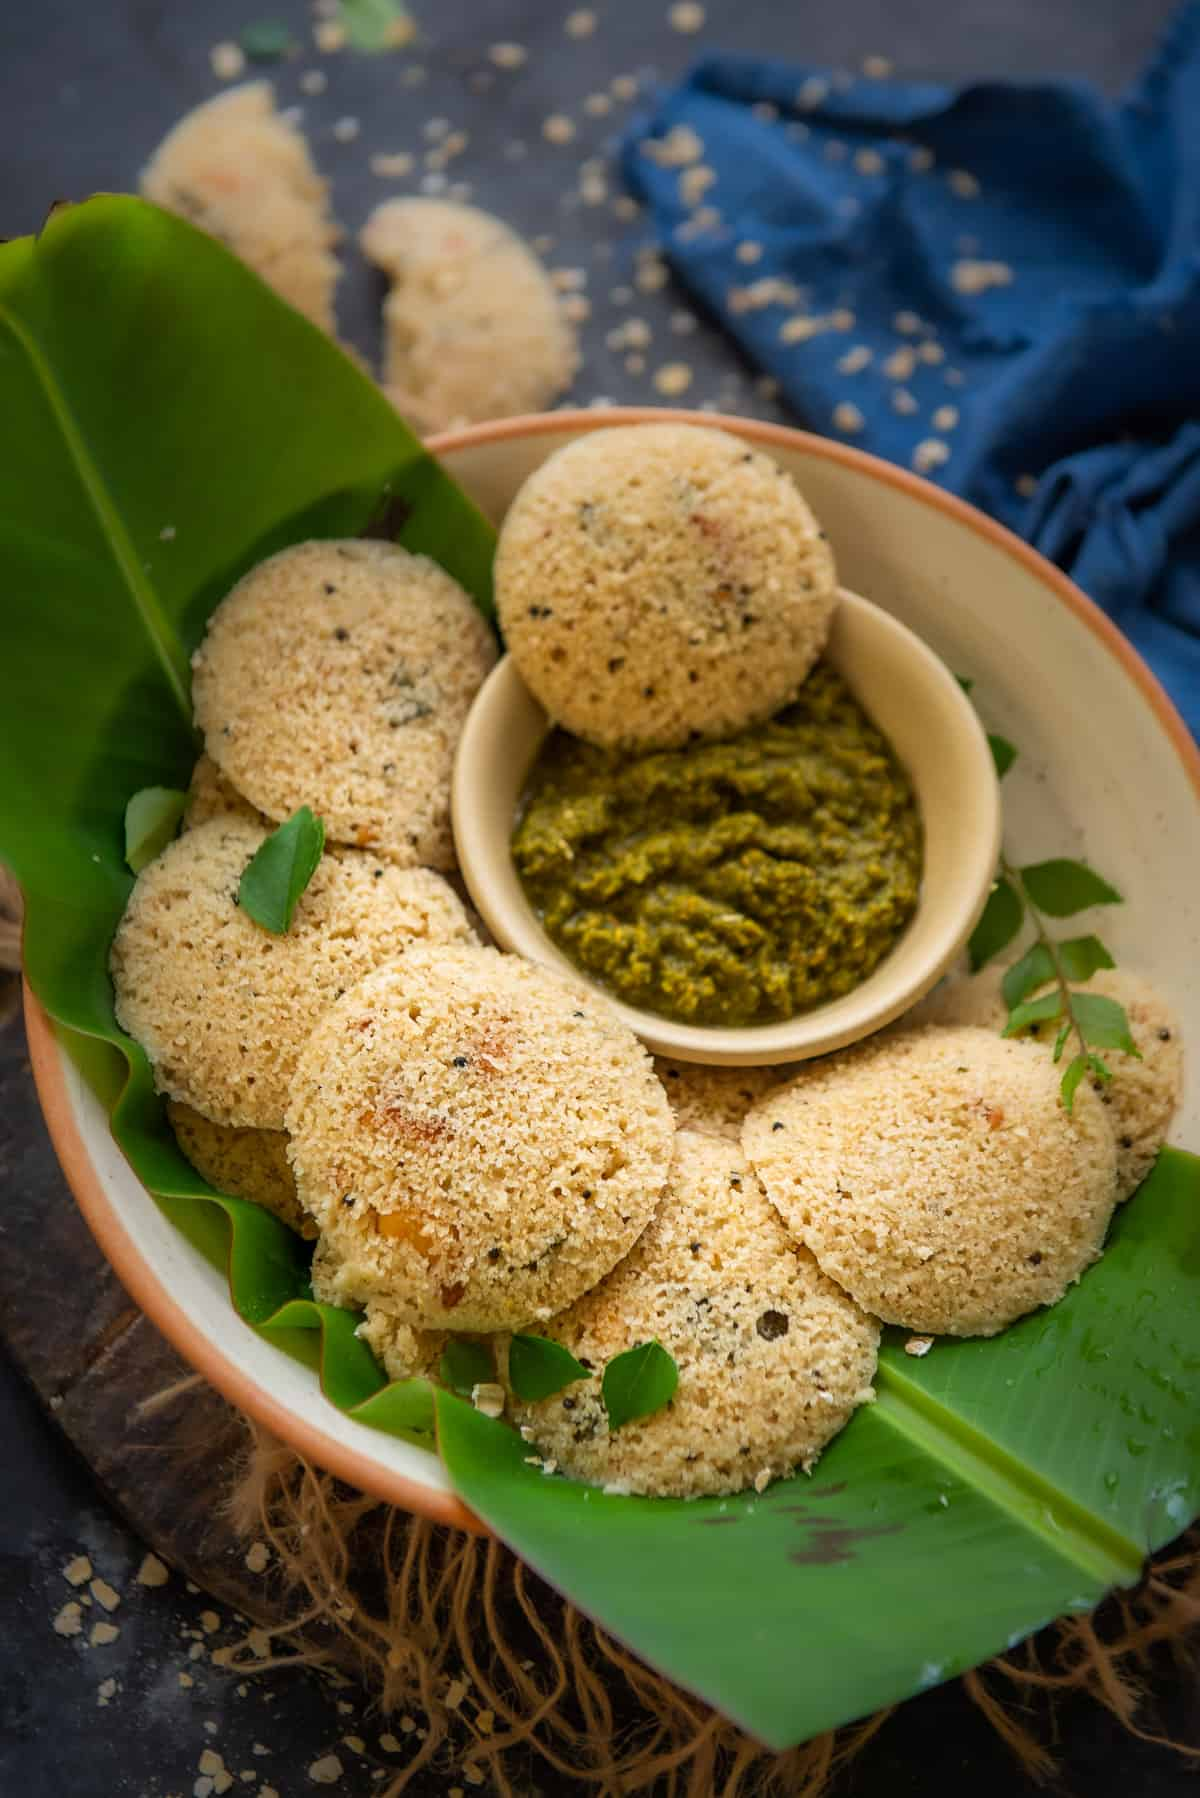 Oats Idli served in a bowl with chutney.